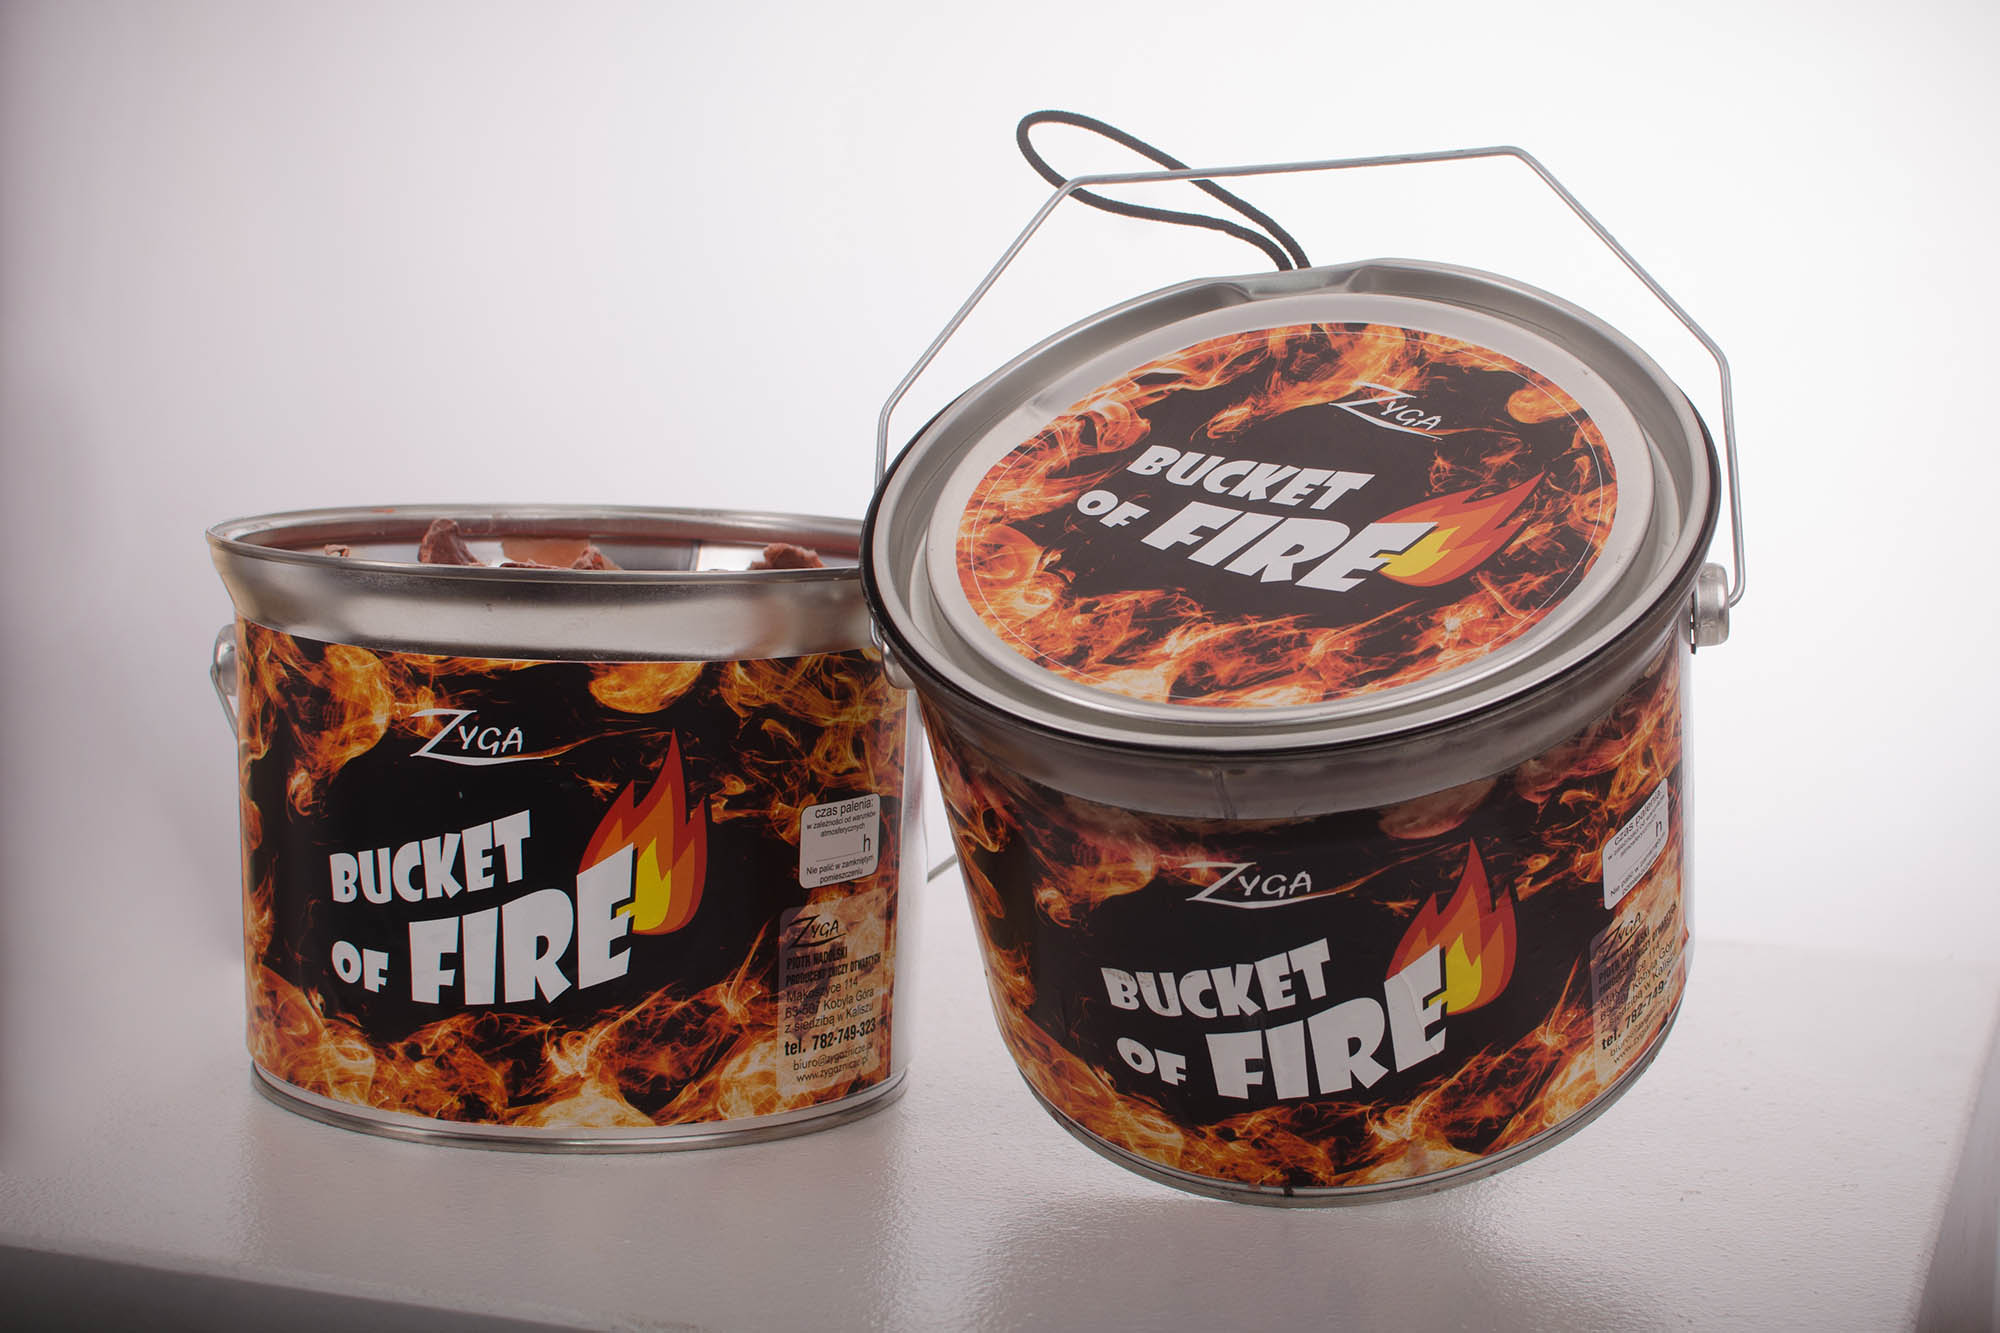 Bucket of Fire